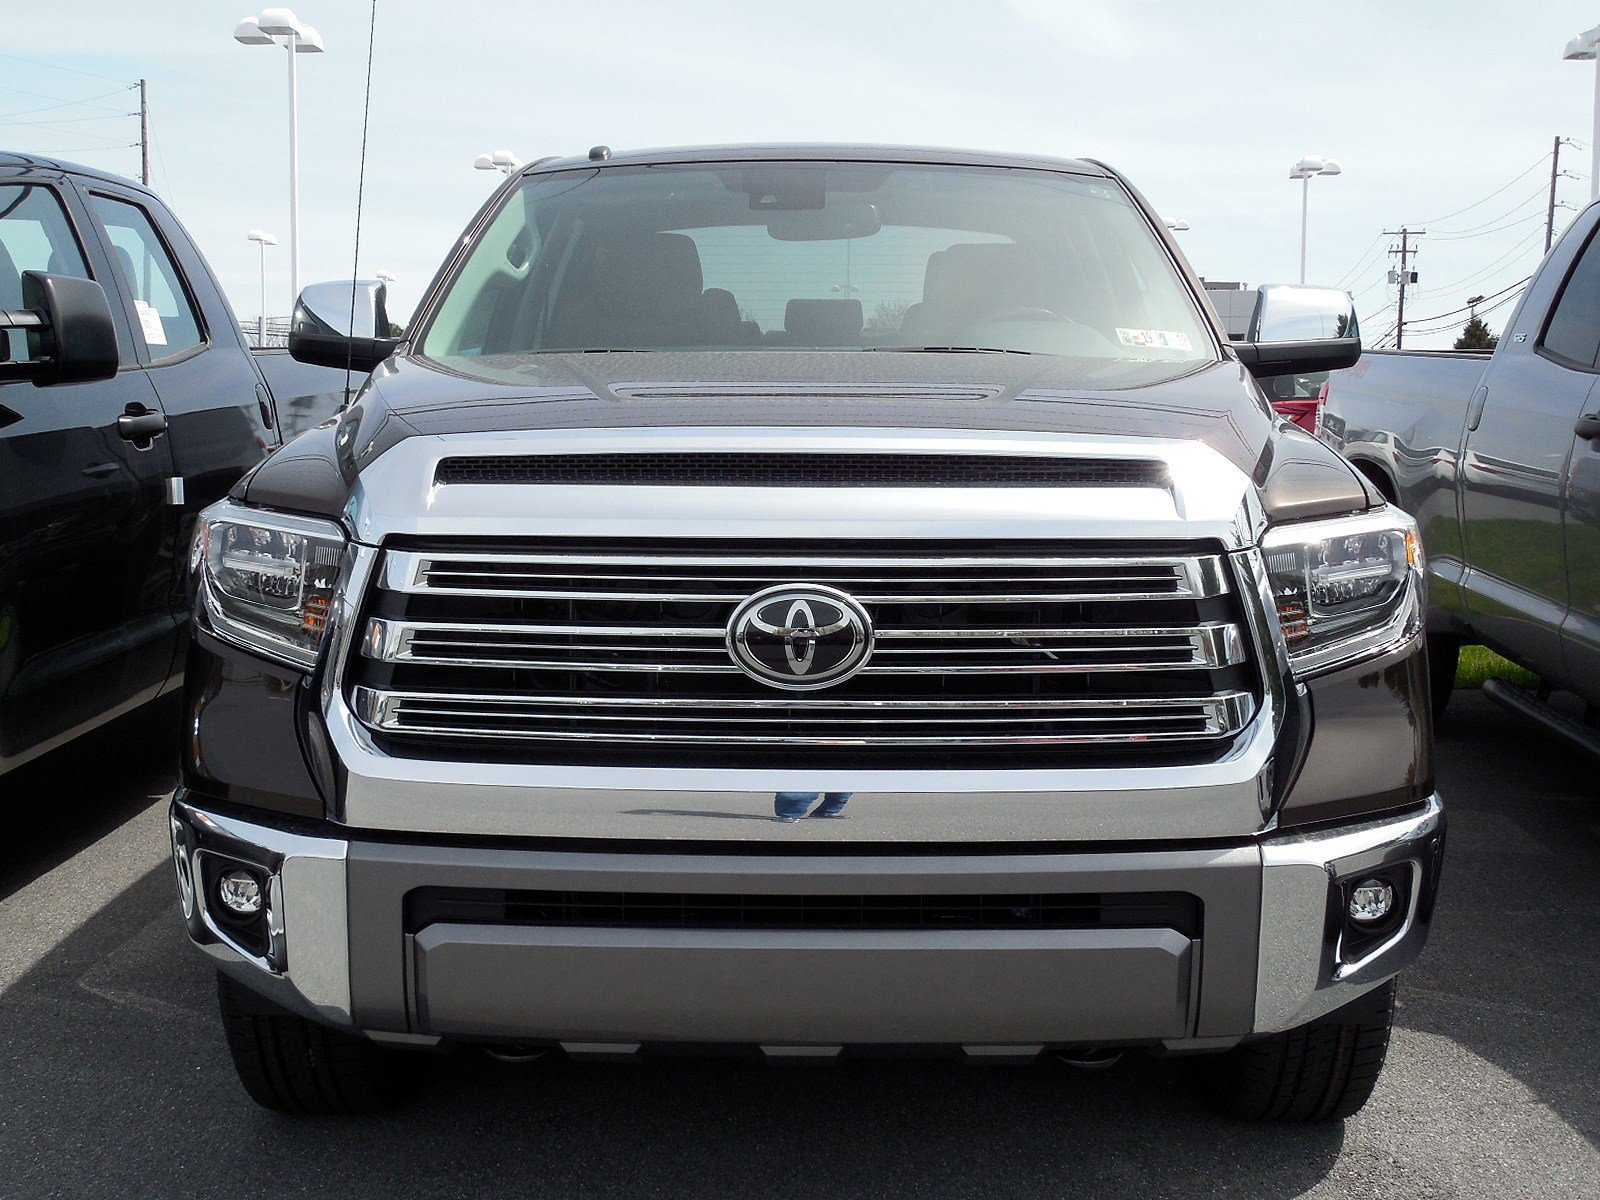 tundra review oldie limited toyota reviews but goodie crewmax rating